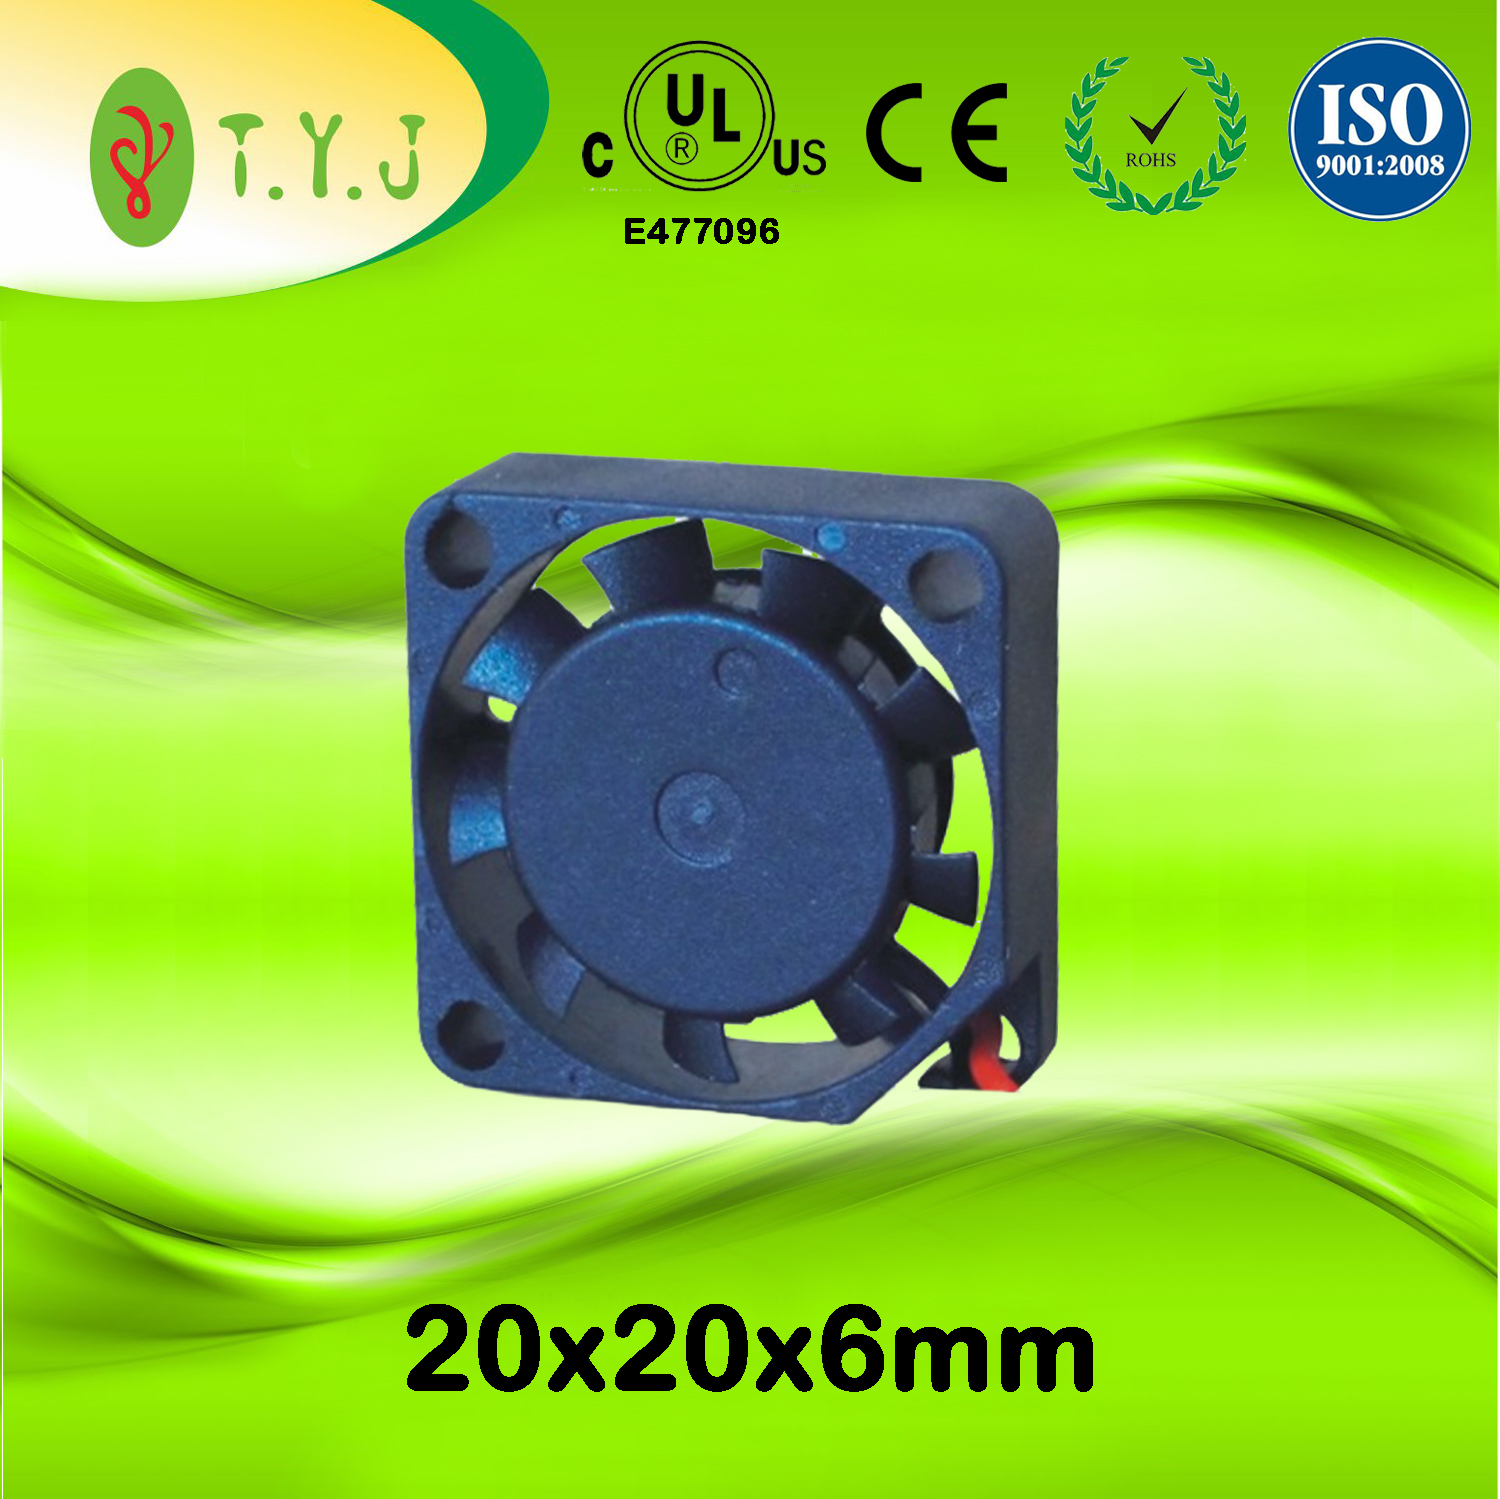 5v 20x20x6mm dc brushless mini cooling fans